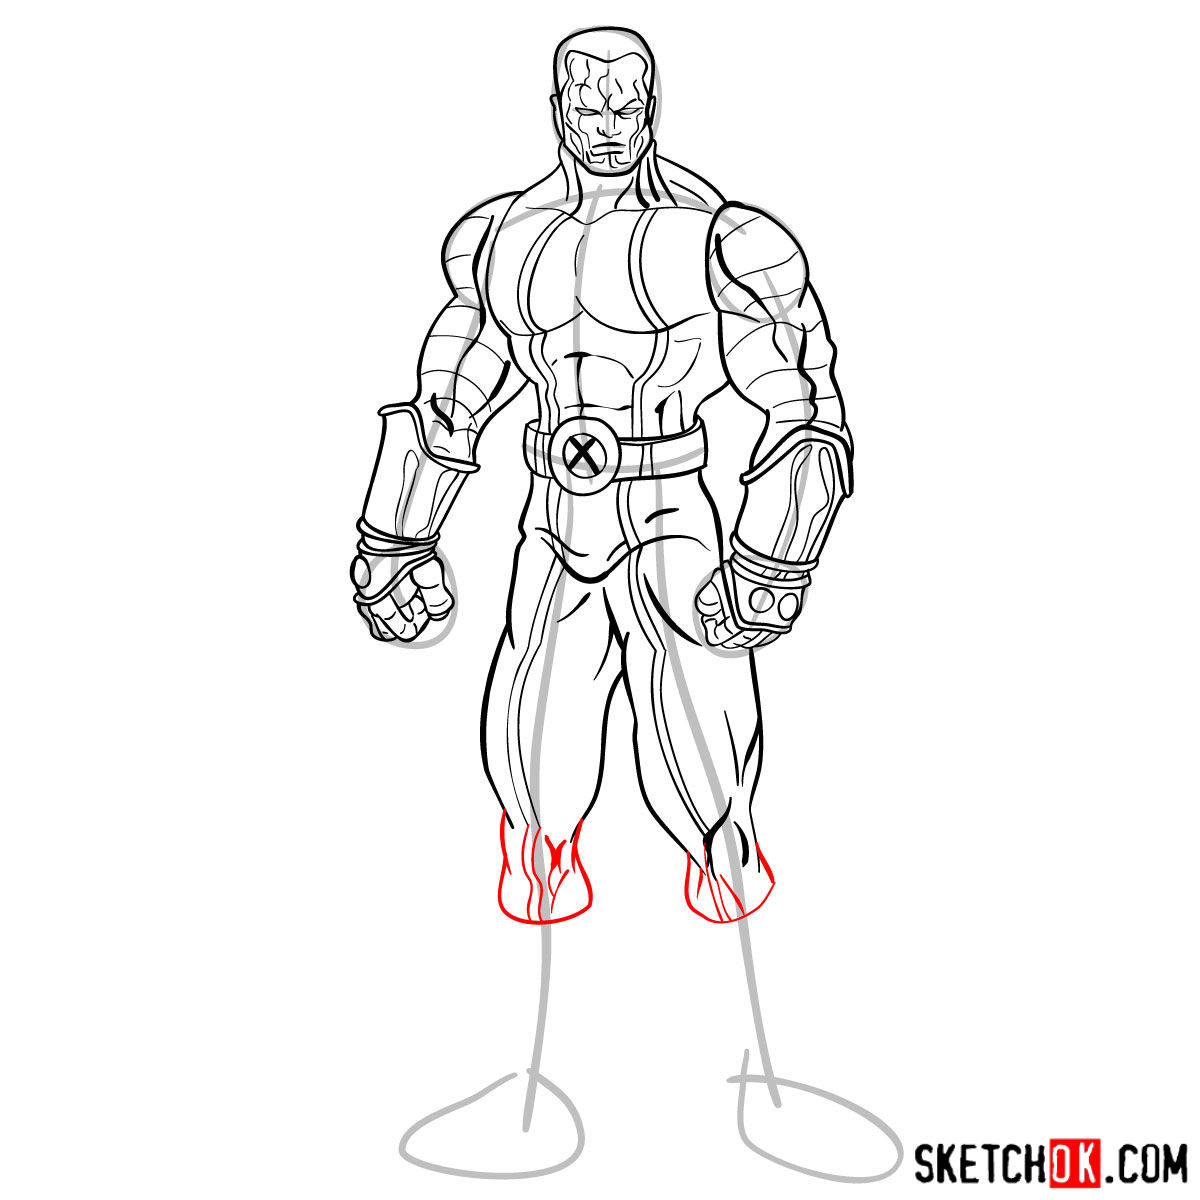 How to draw Colossus from Deadpool film and X-Men series - step 13